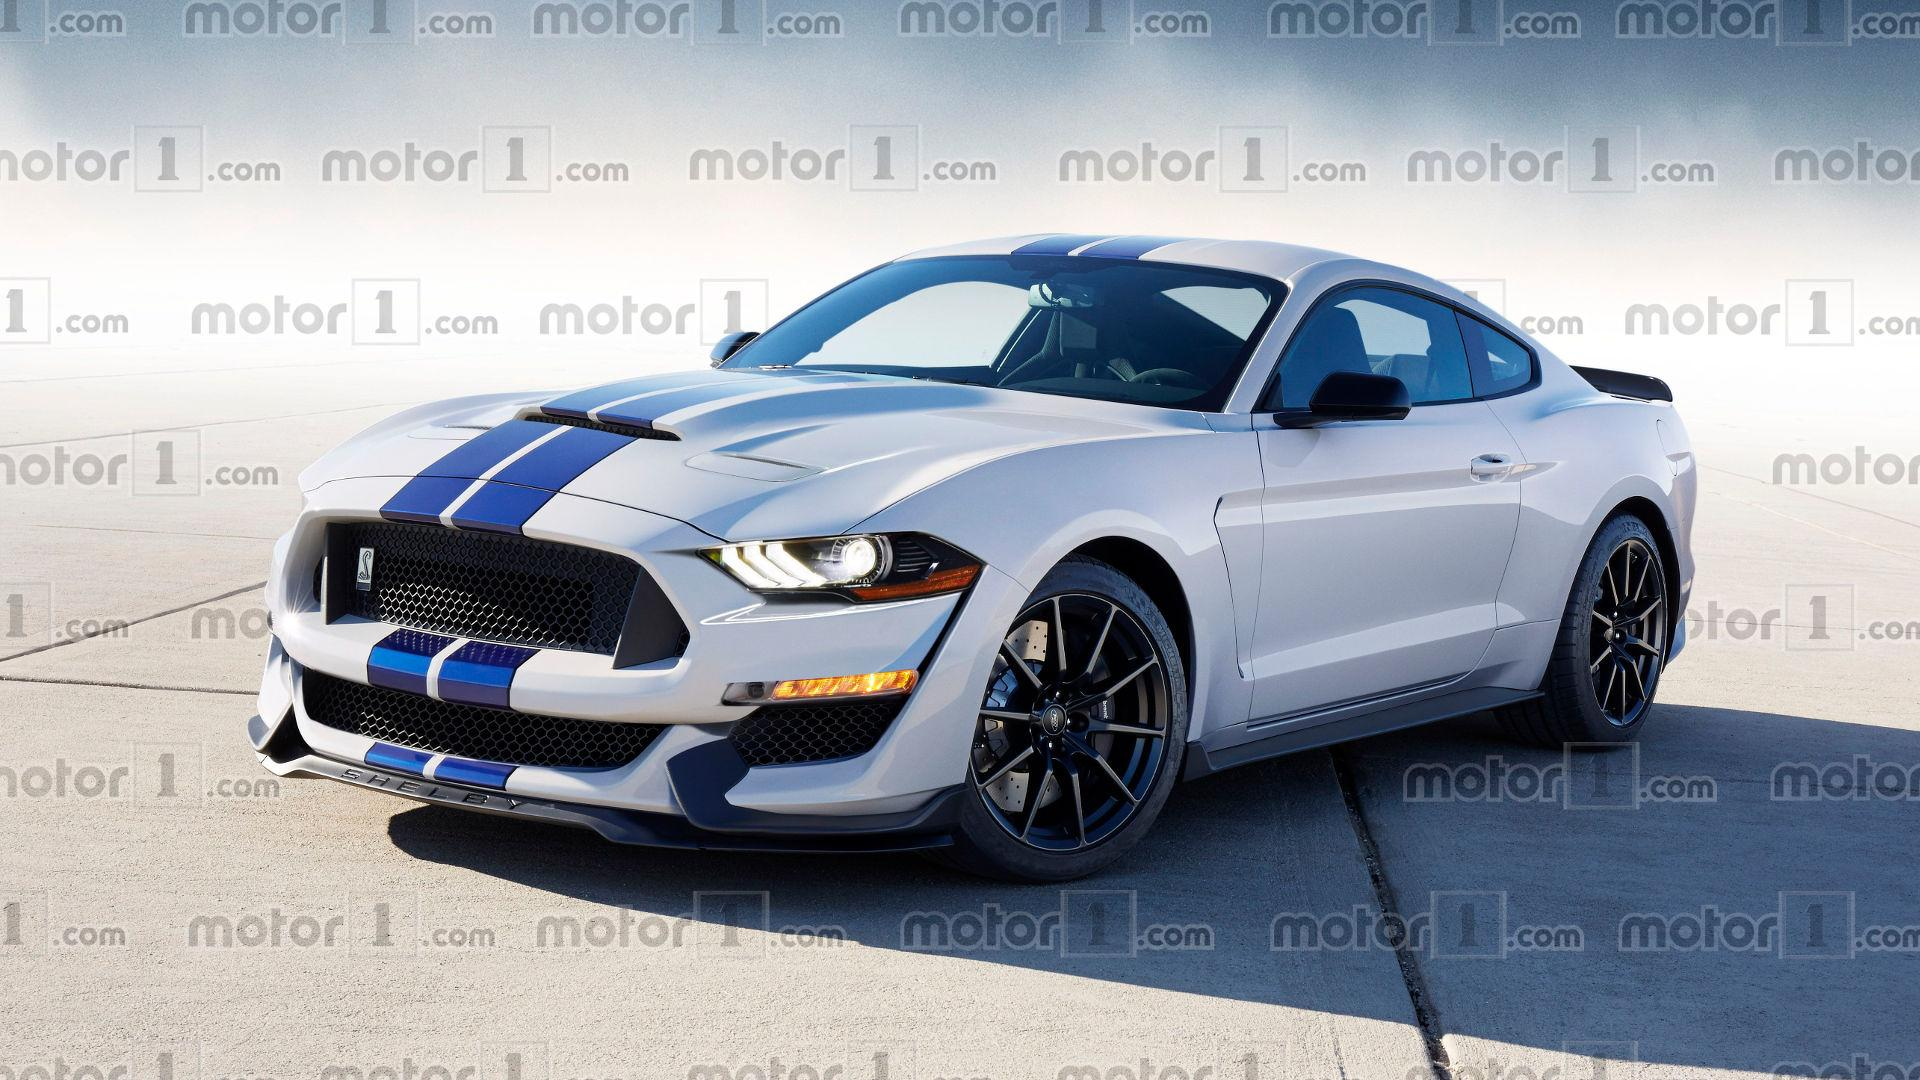 95 The Best 2019 Ford Mustang Shelby Gt500 Prices